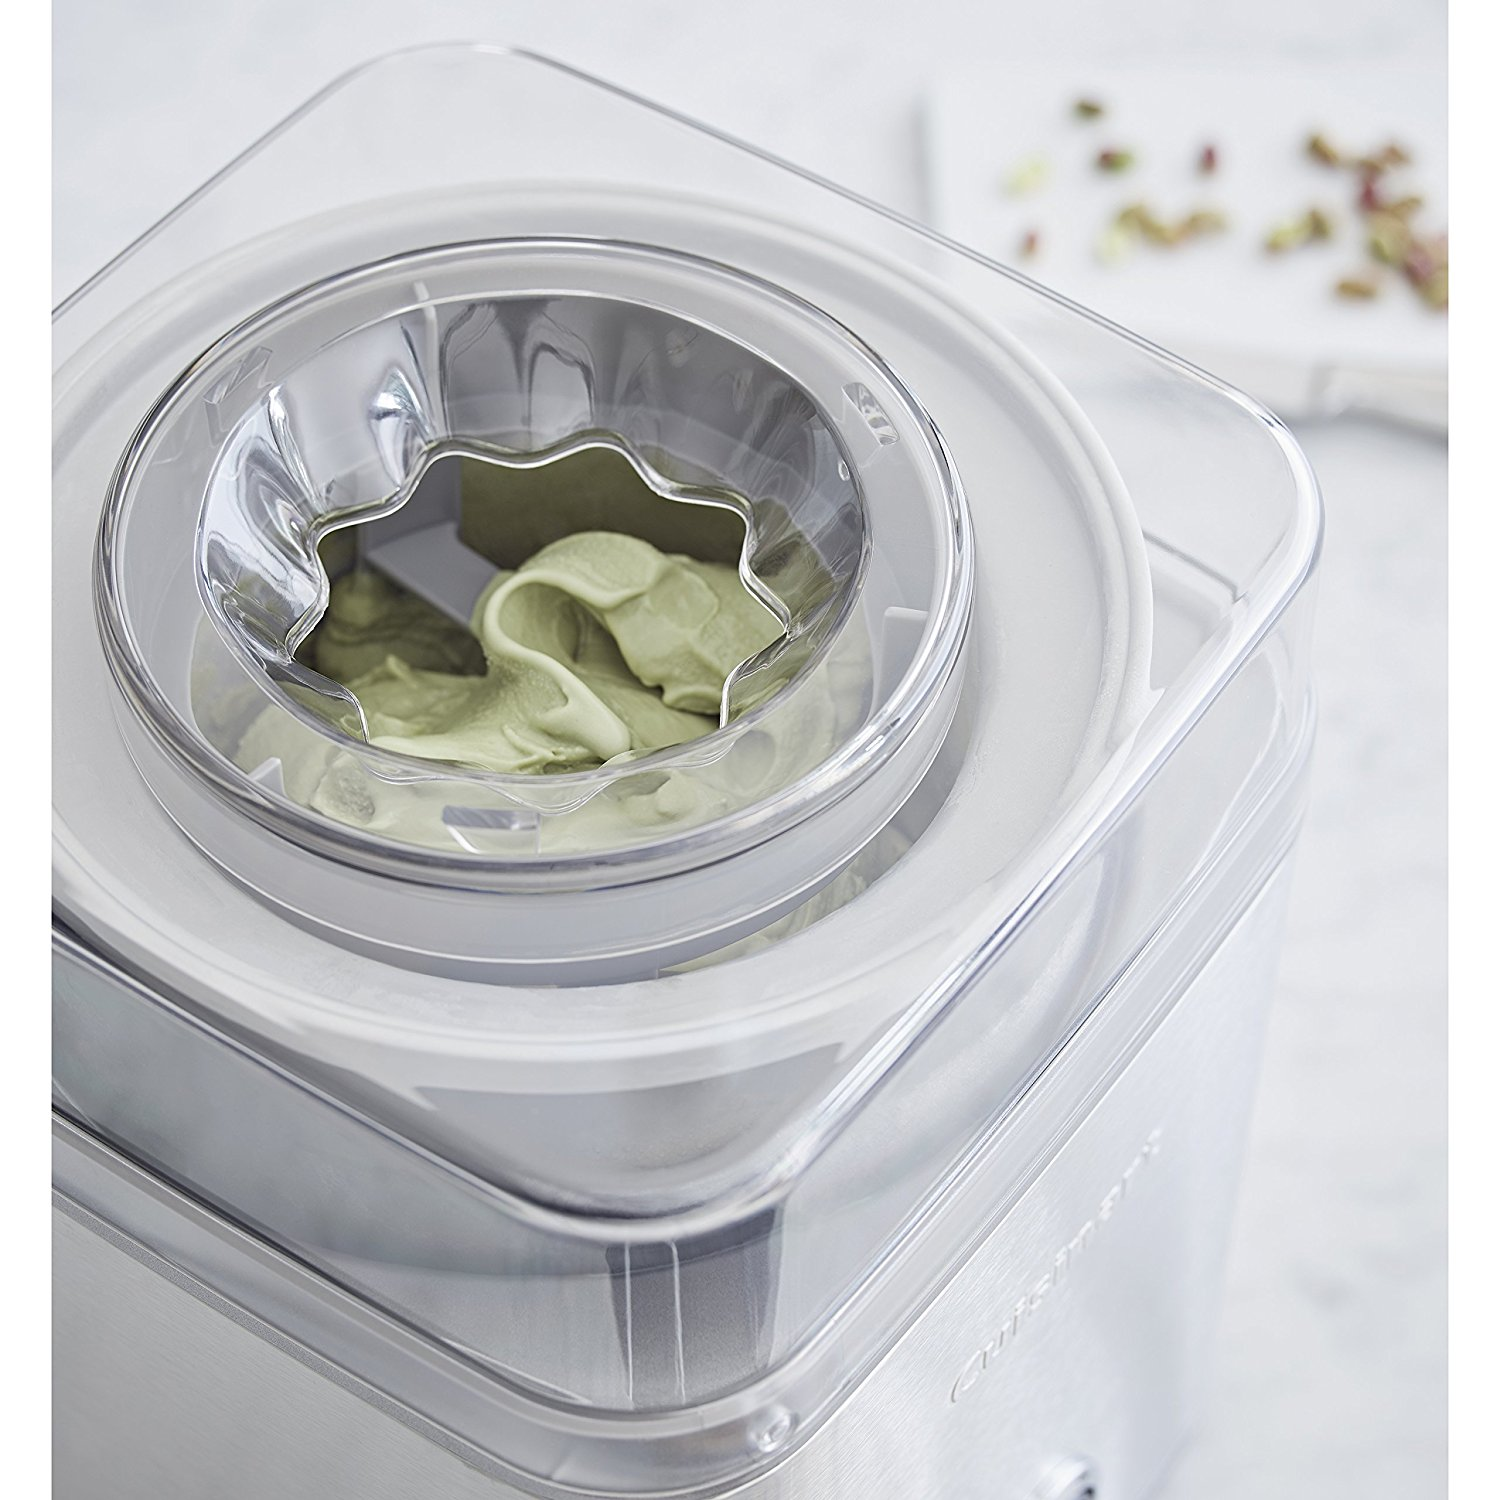 Image of Cuisinart ICE30B open lid from above